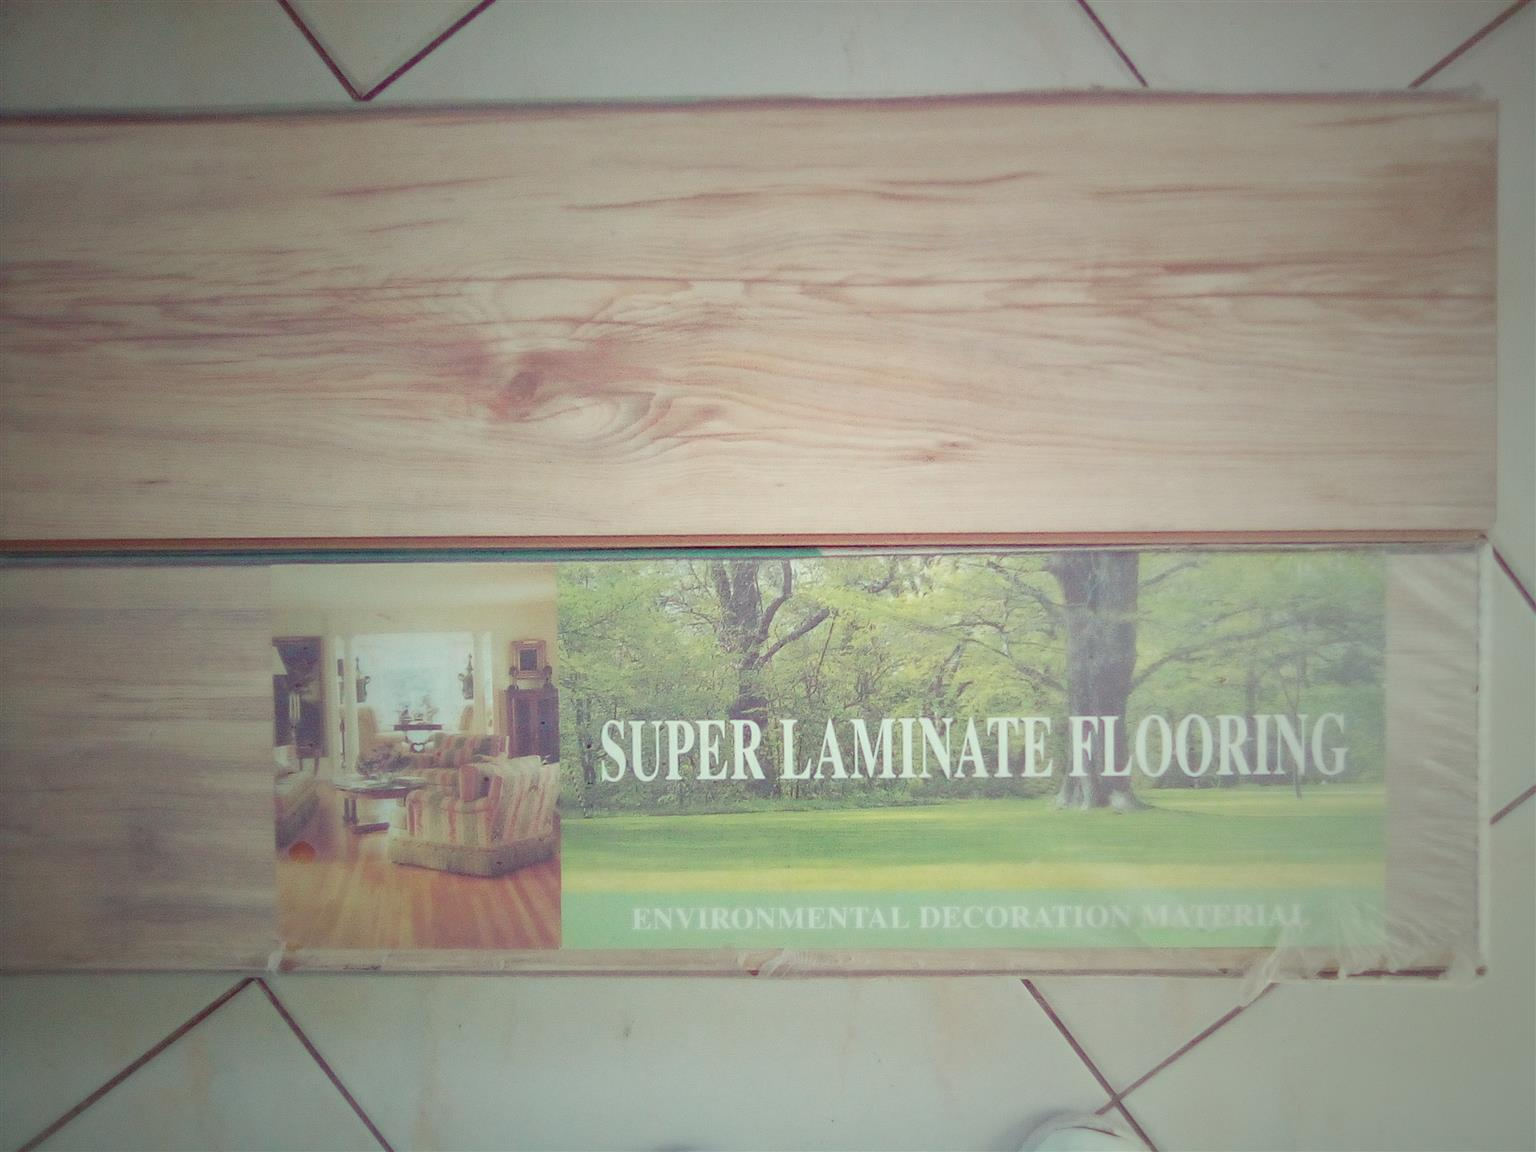 Laminated Flooring Boards & Emboshed Upholstery Fabric for sale